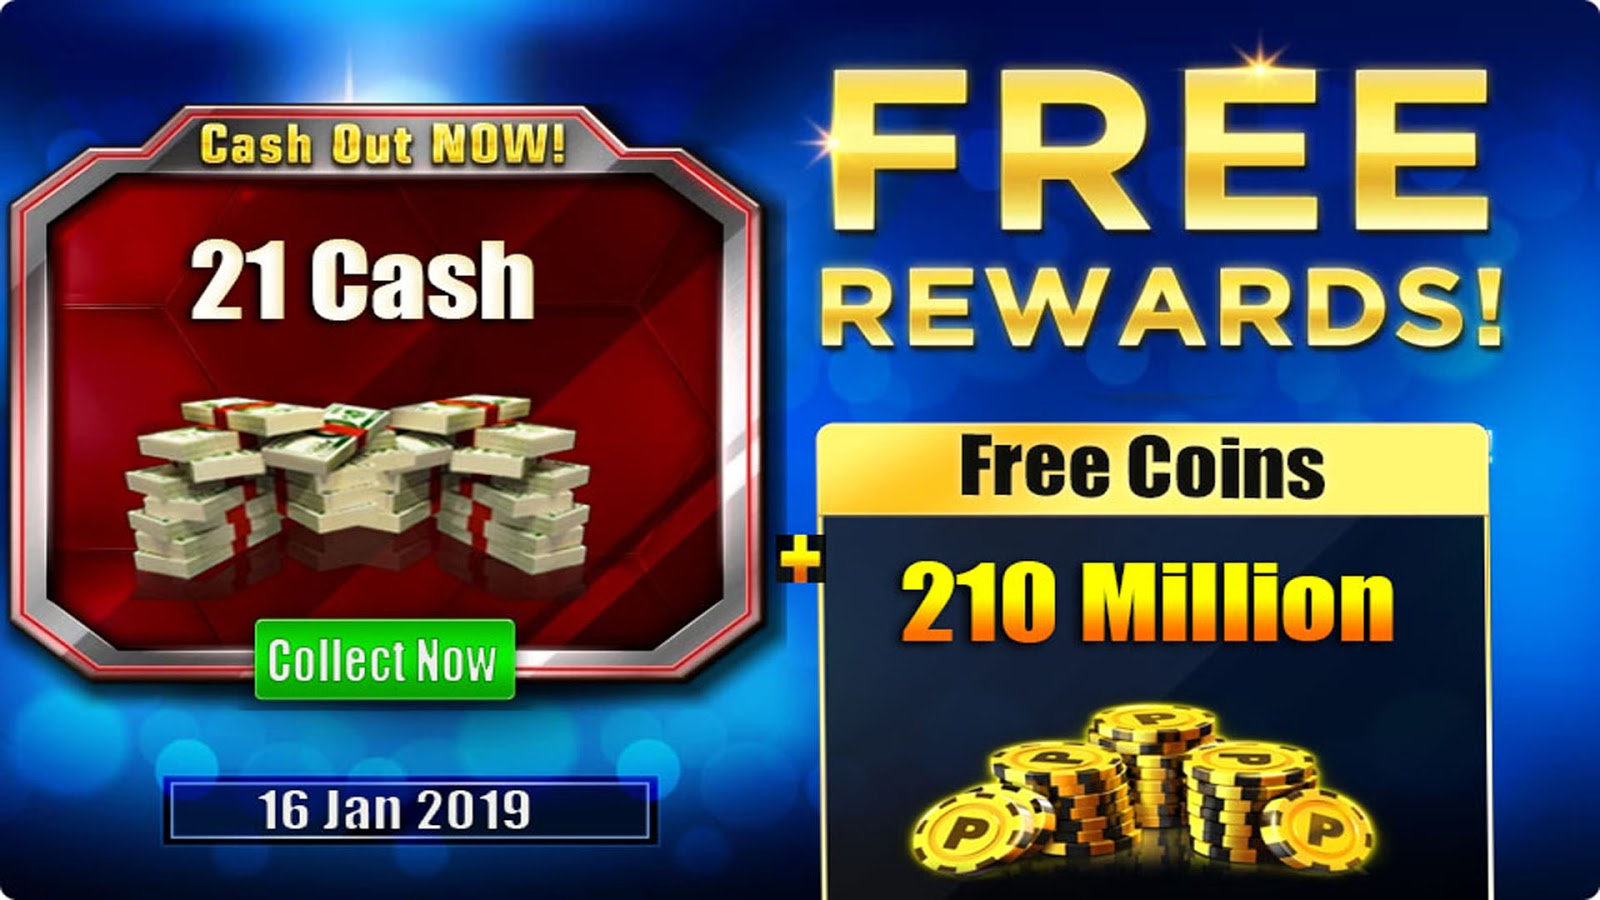 8 Ball Pool 210 Million Coins + 21 Cash Giveaway